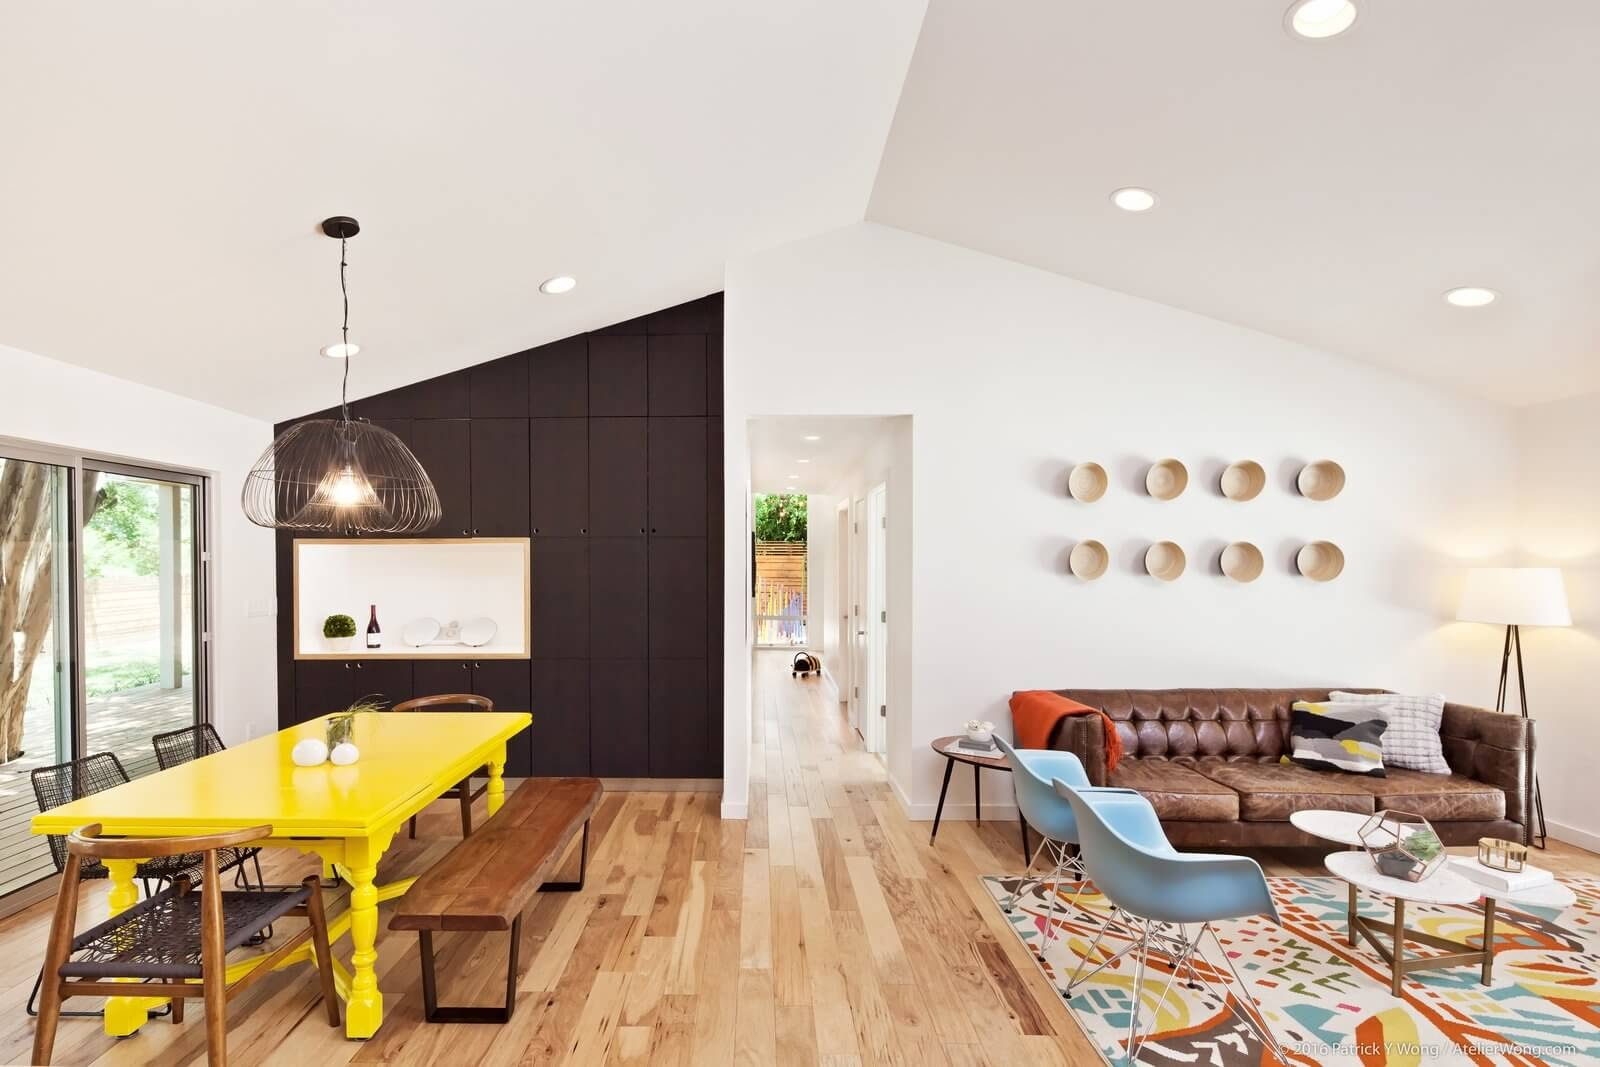 A ranch house living room with contemporary design elements, including bright colors and fun patterns